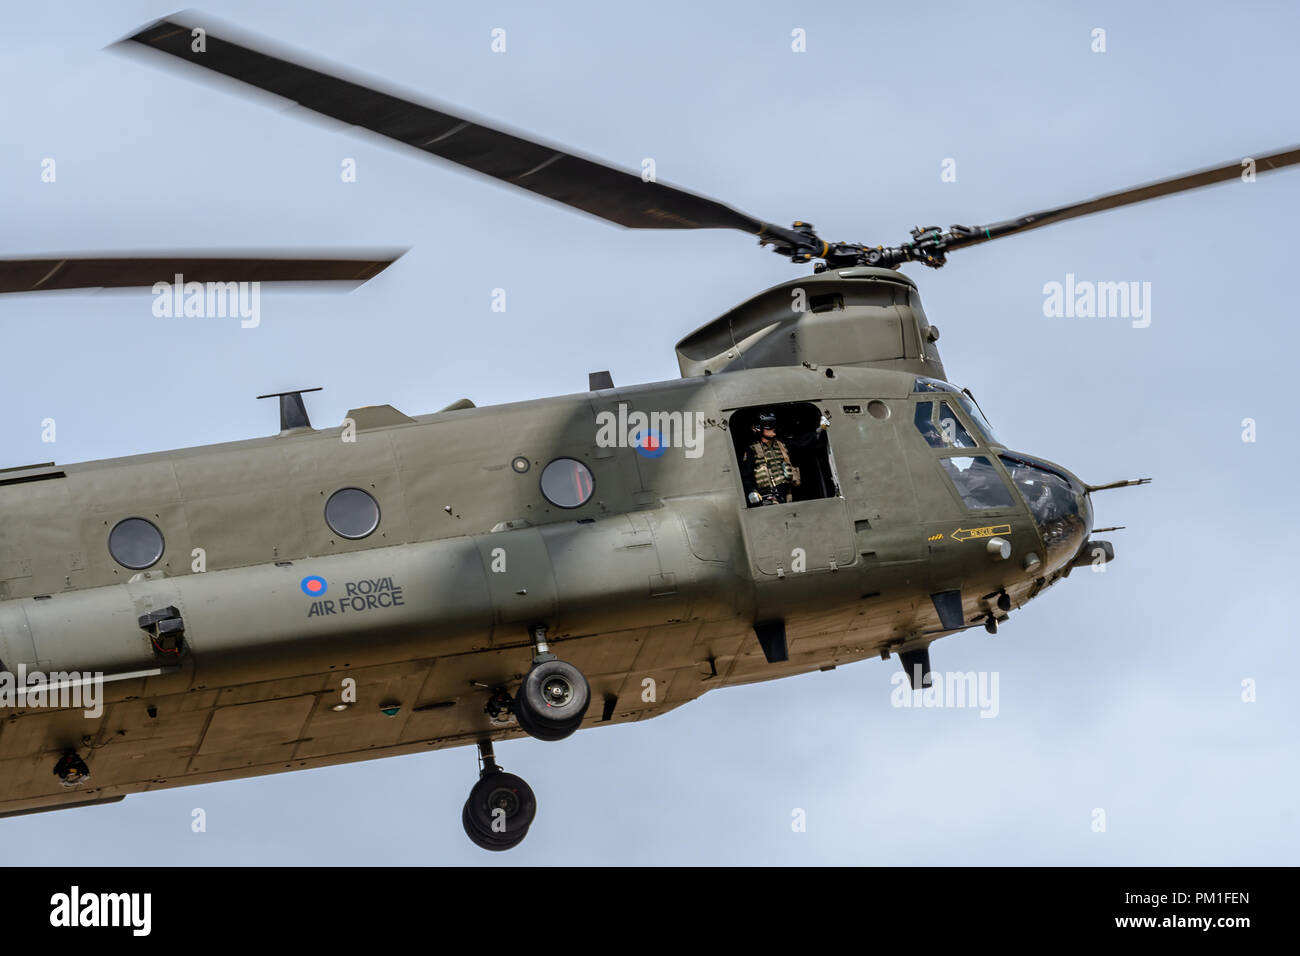 FAIRFORD, UK, JULY 13 2018: A photograph documenting the Royal Air Force displaying a Boeing Chinook twin rotor helicopter aircraft at RAF Fairford - Stock Image